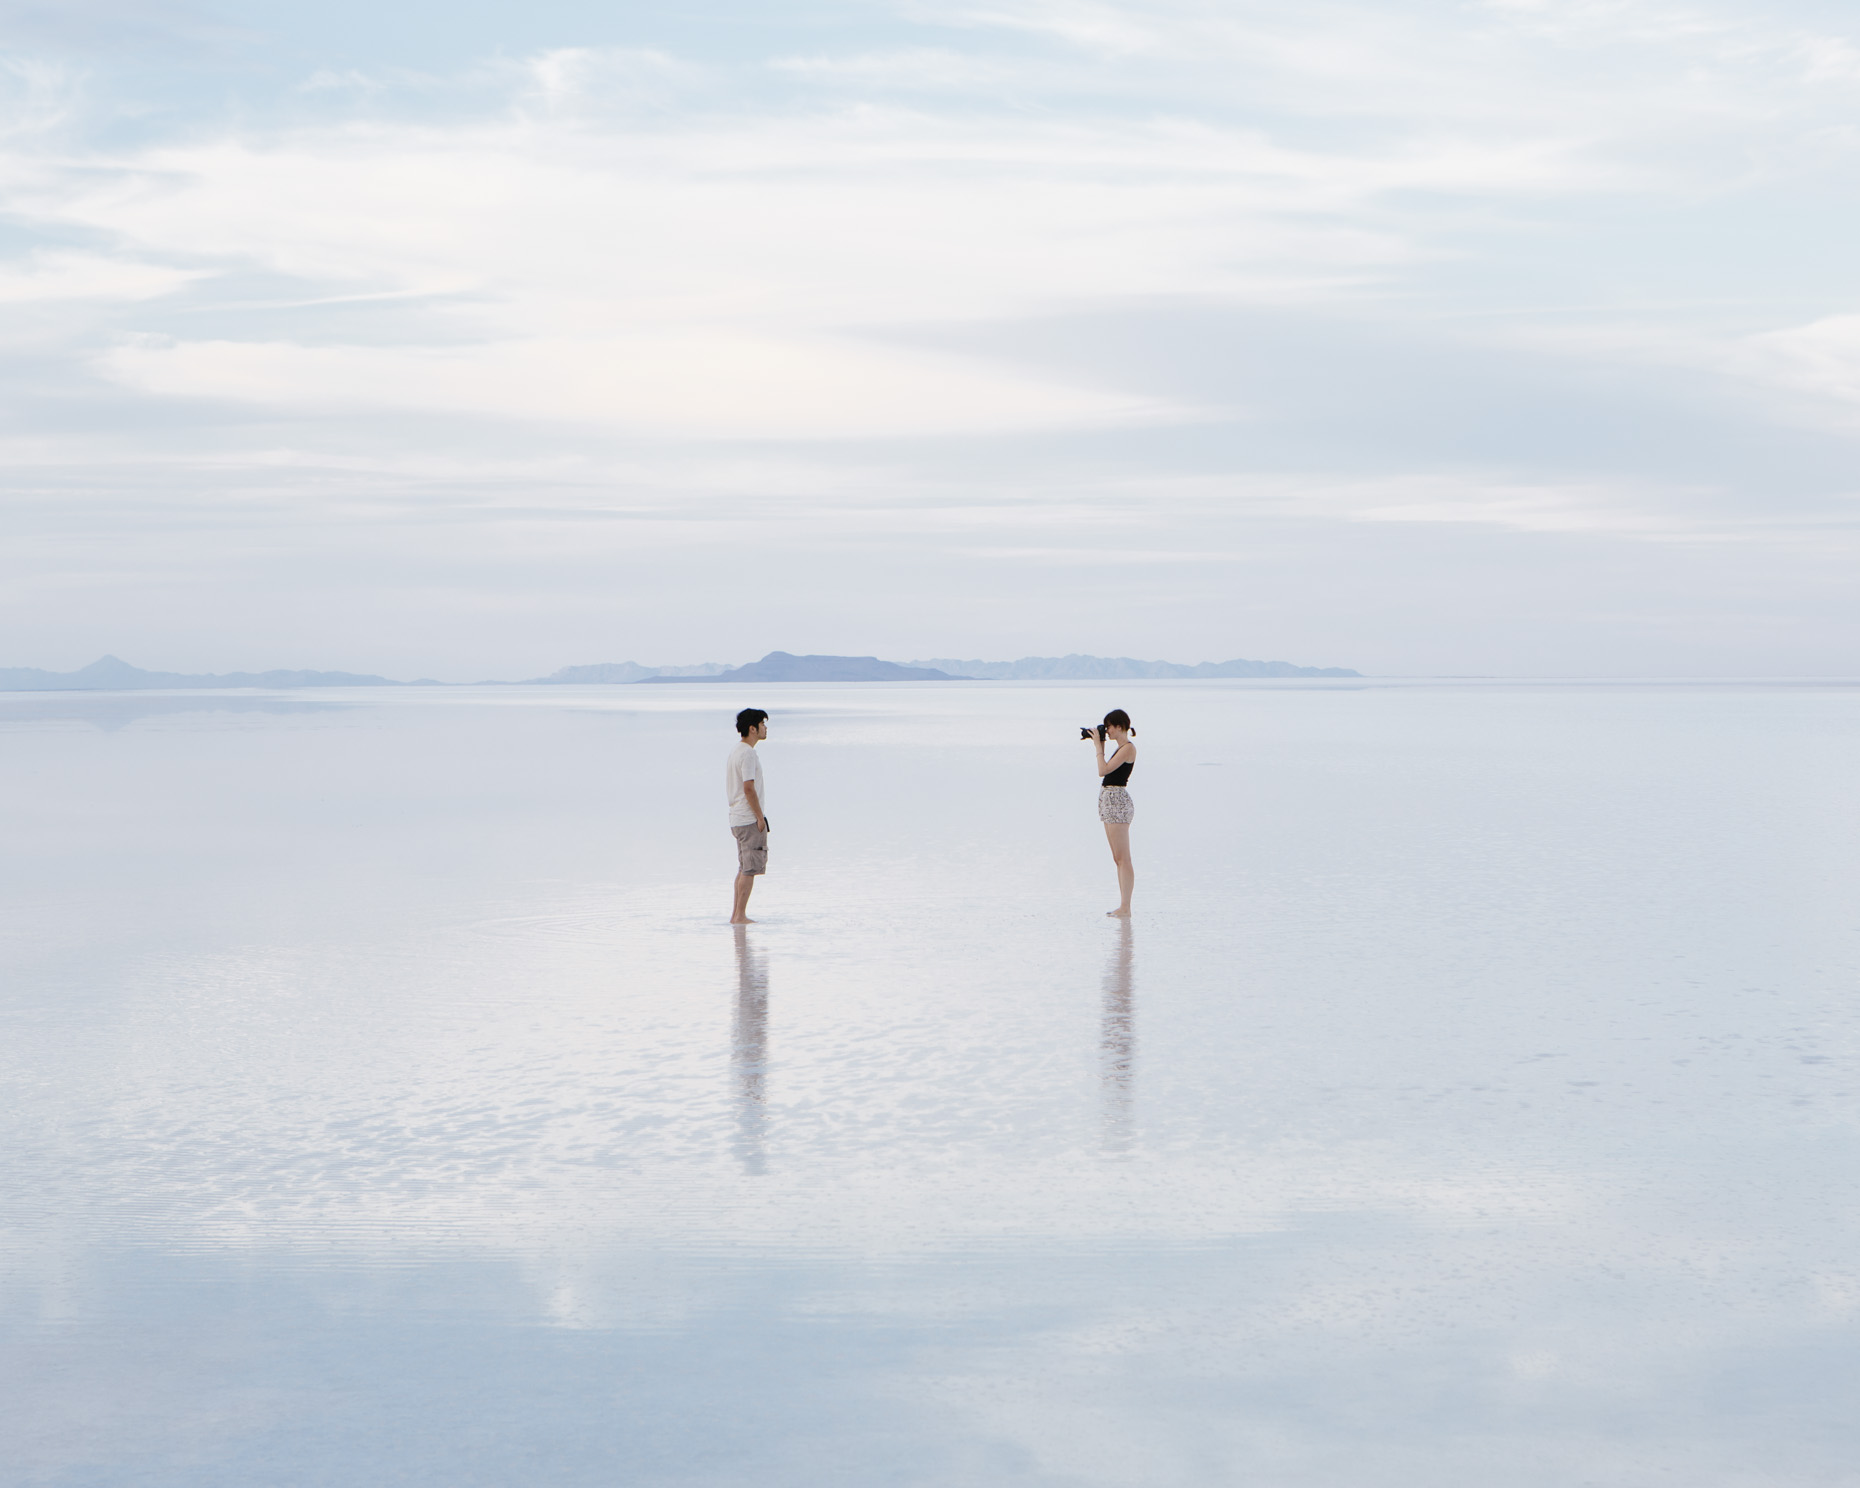 Couple taking photograph on flooded Bonneville Salt Flats, Utah - Paul Edmondson